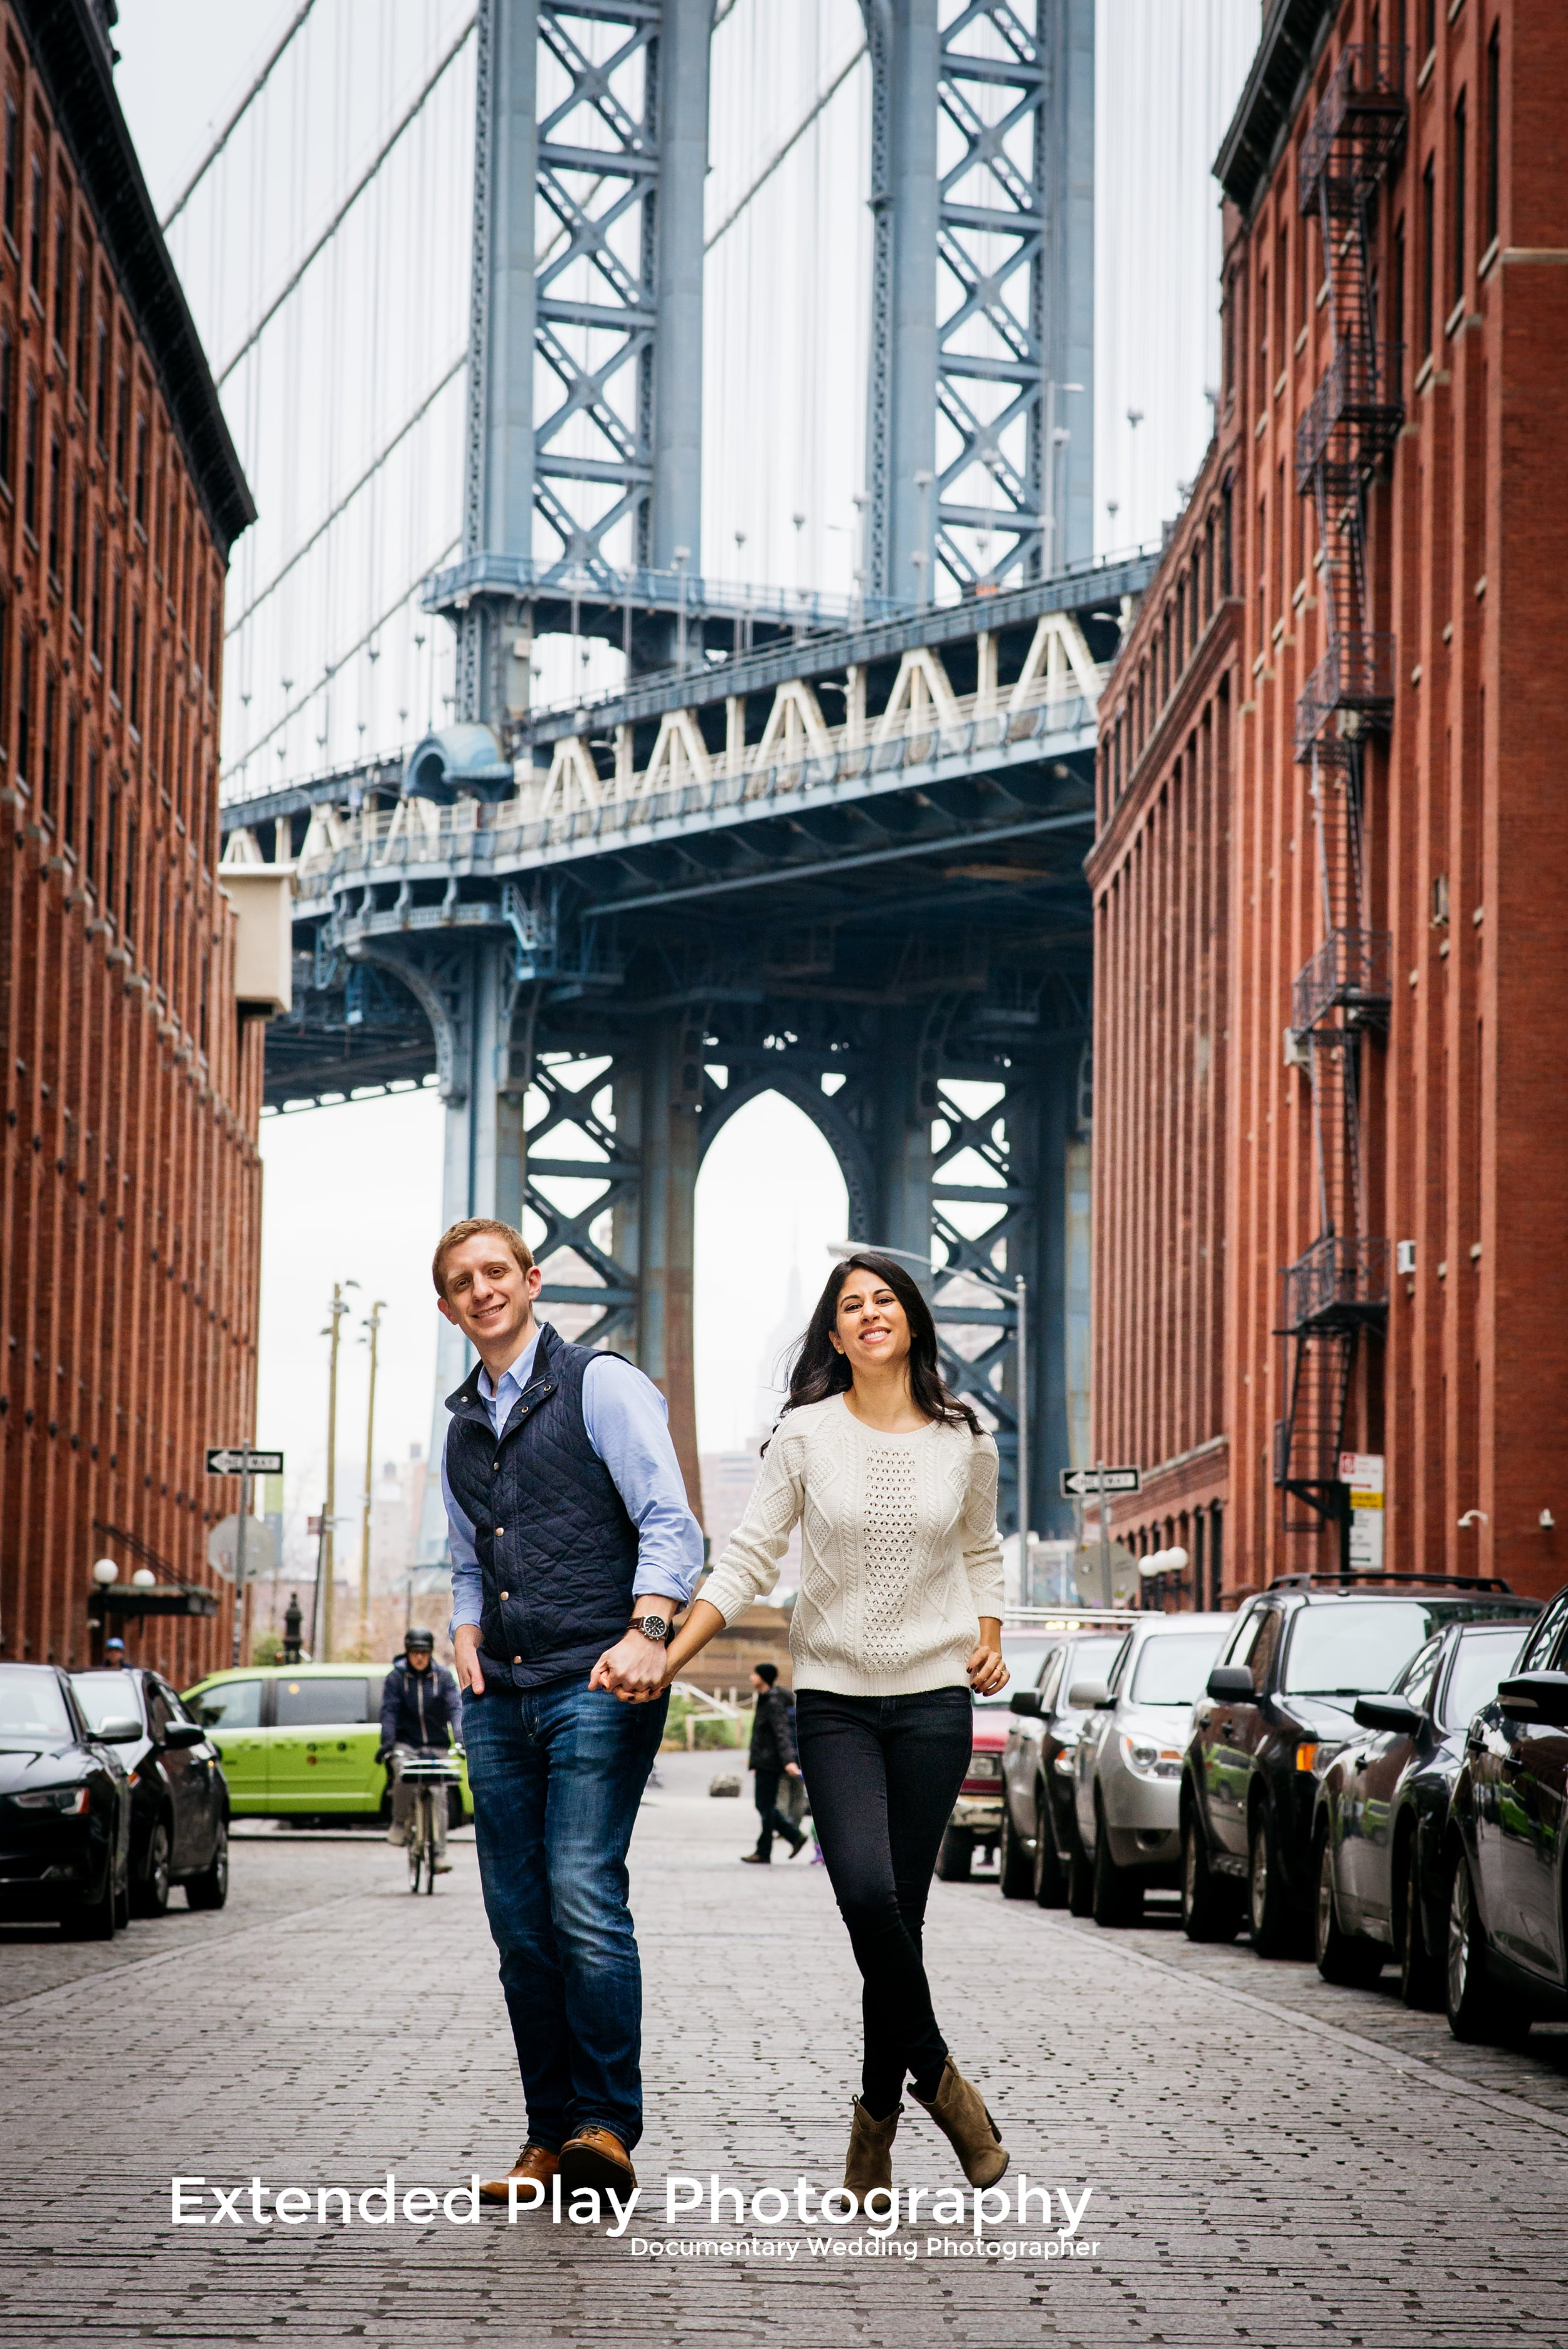 Extended Play Photography New York City Engagement-5.jpg